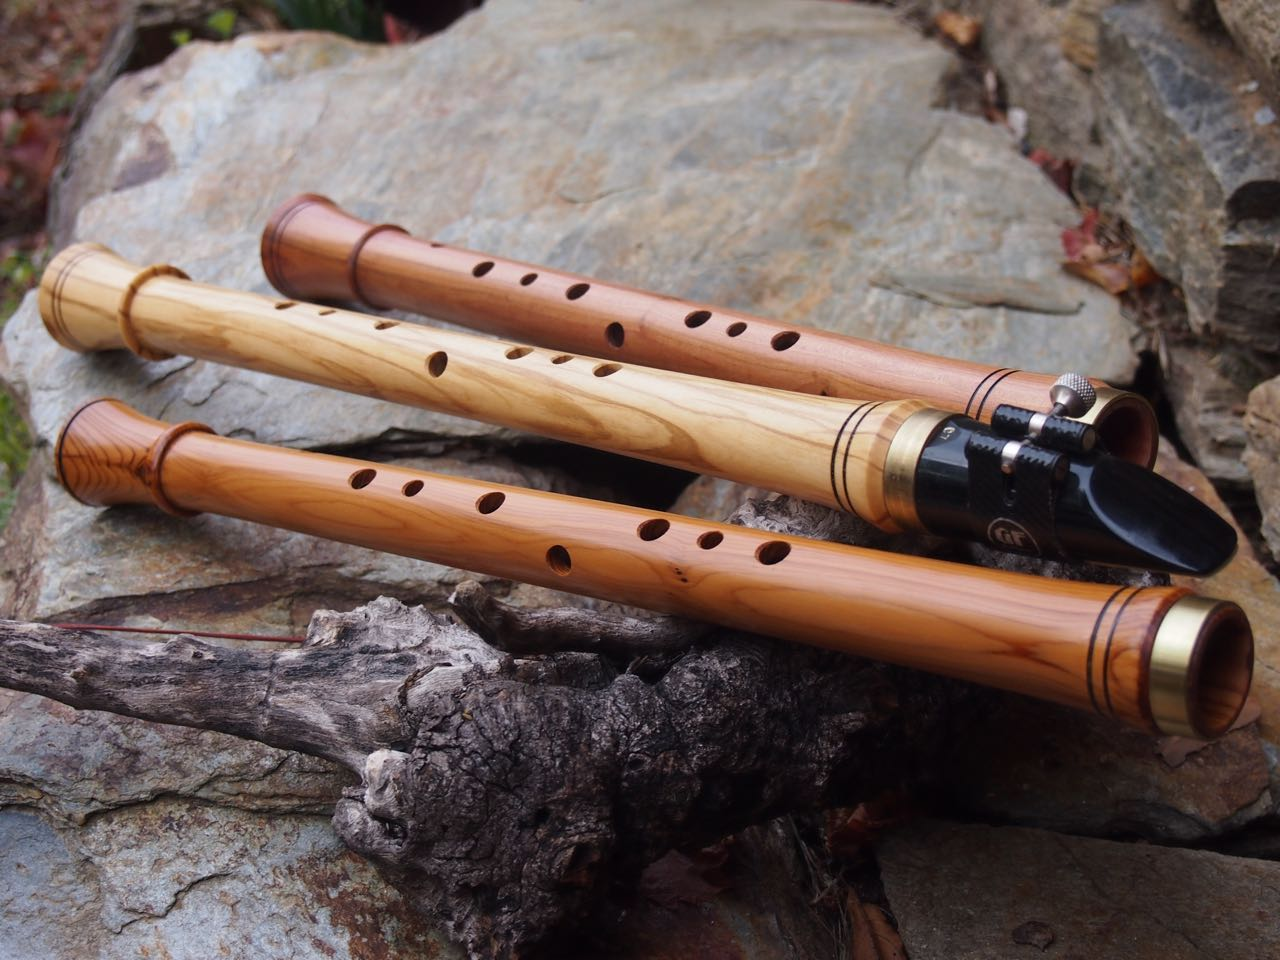 Chalumeau, the predecessor to the modern-day clarinet with 9 toneholes